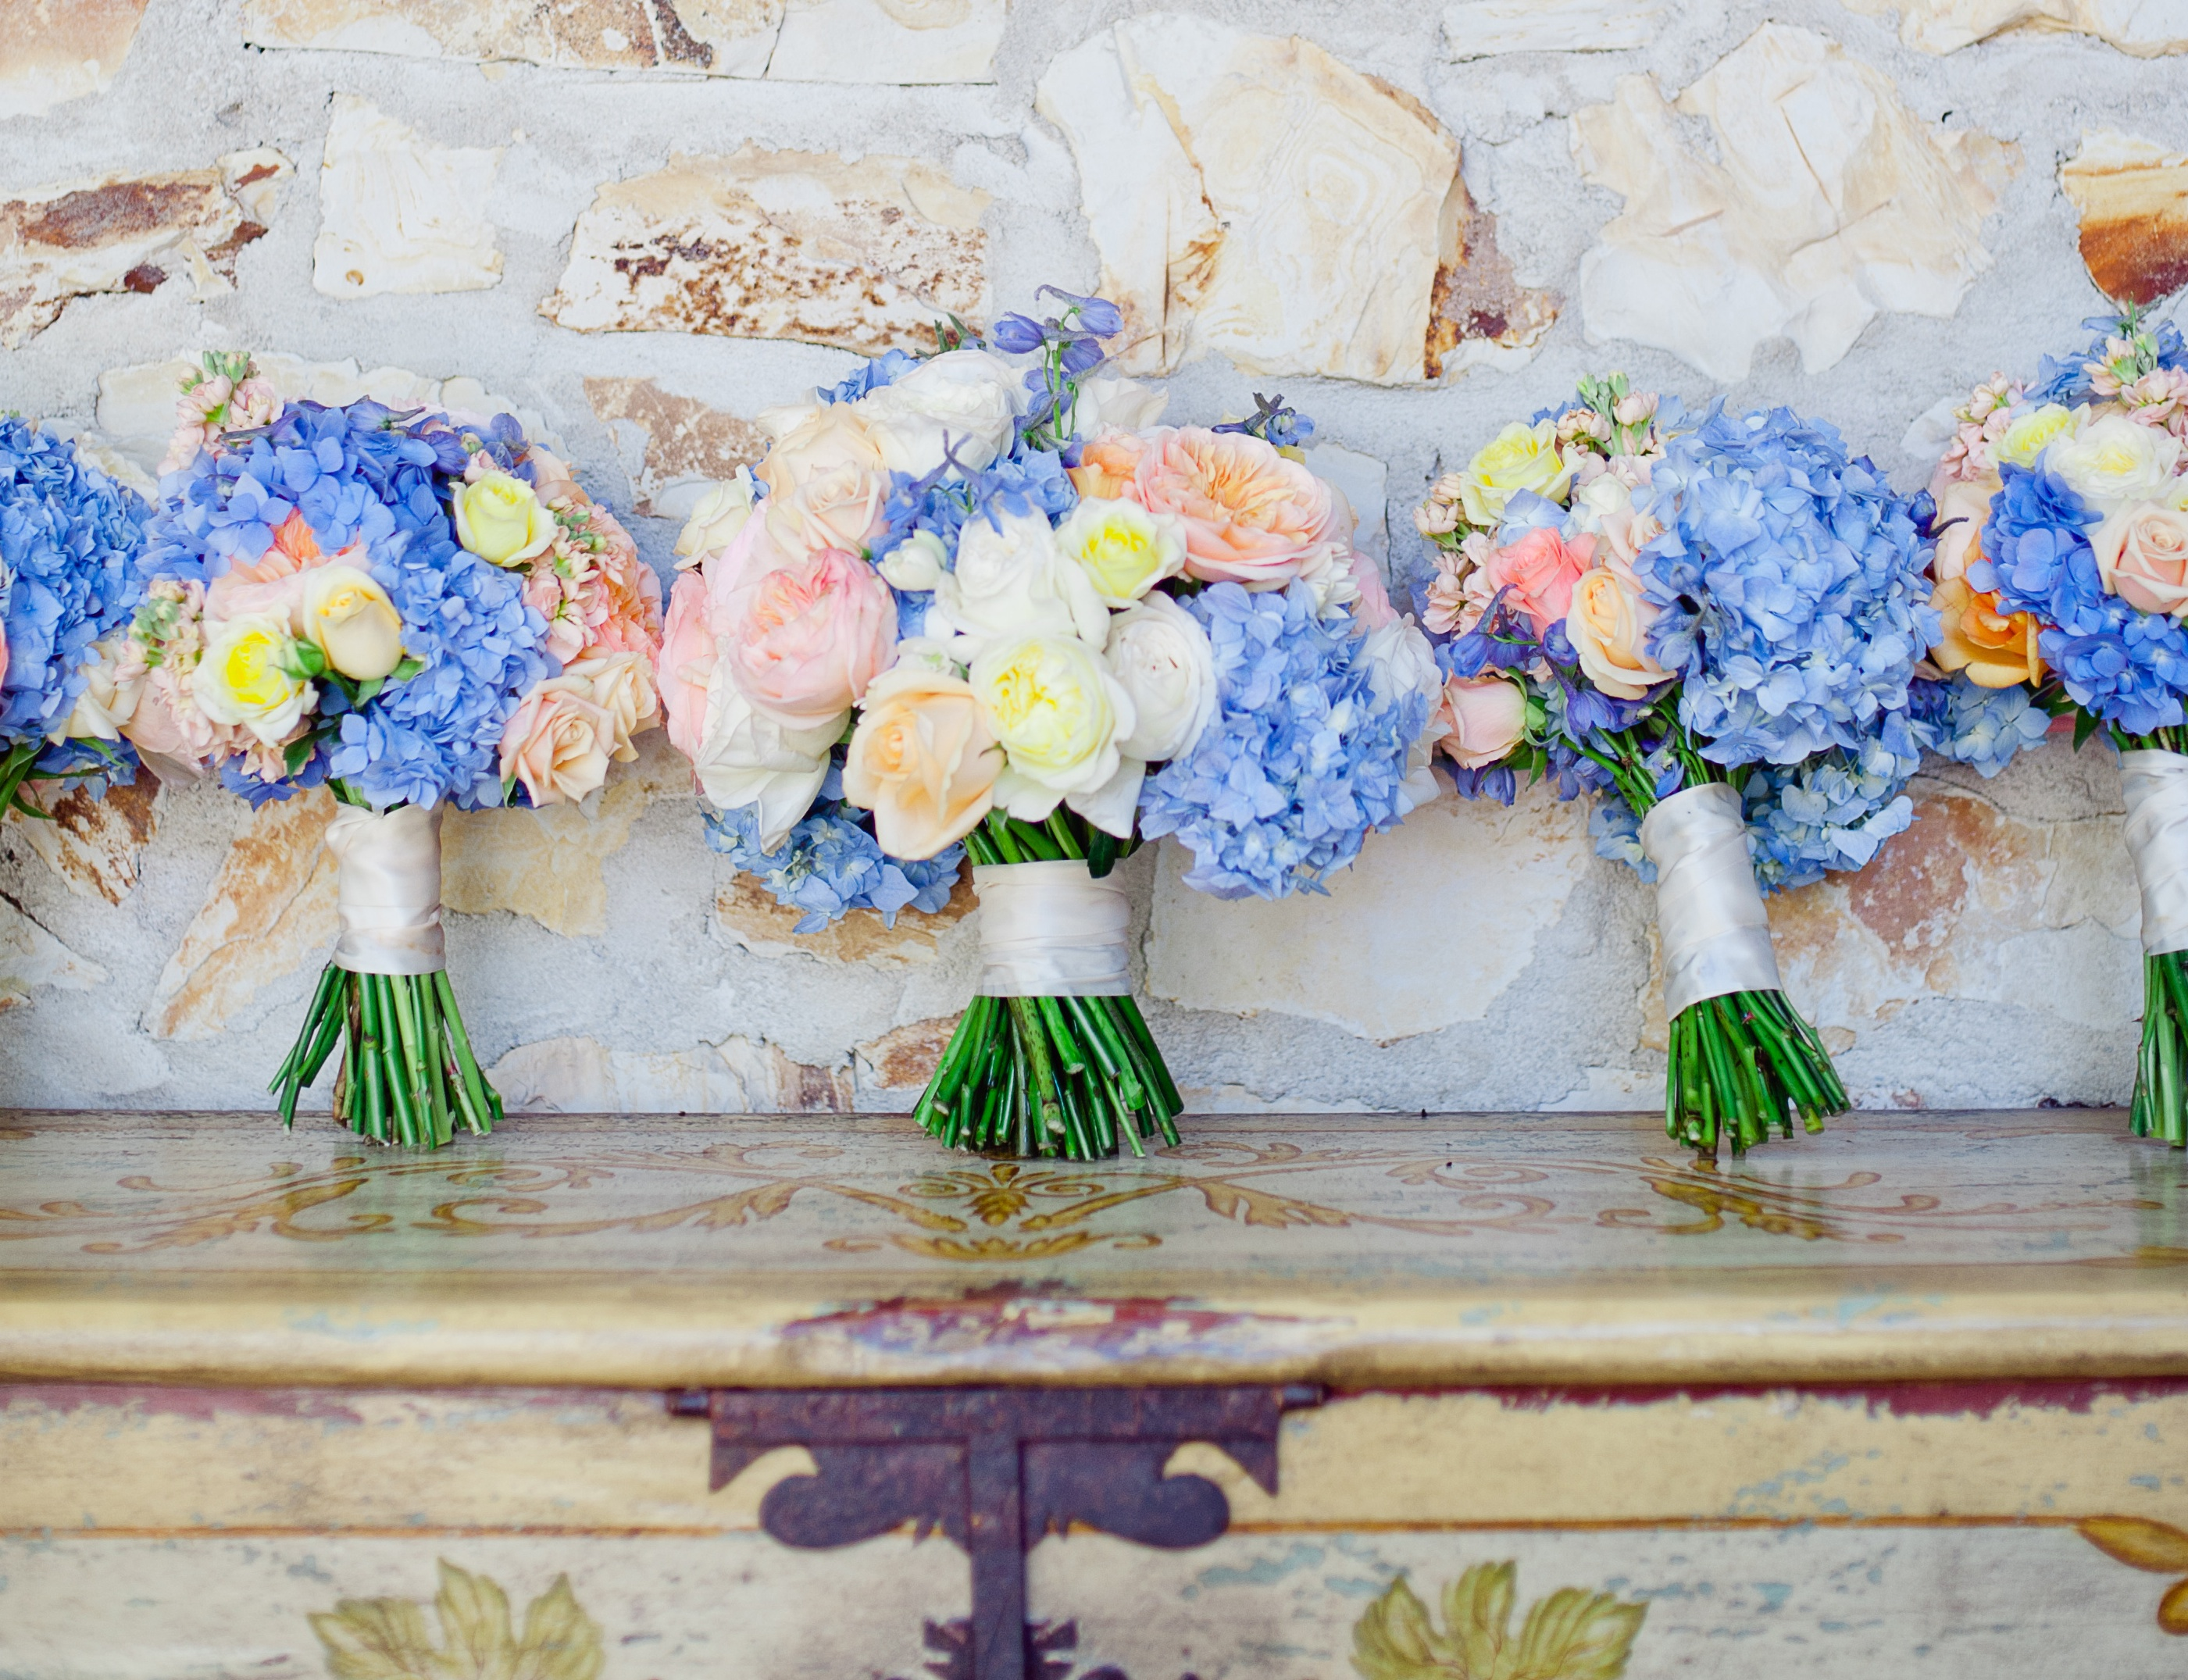 Blue wedding flowers inside weddings color has been the single most exciting trend in weddings the past few years with some of the most beautiful and memorable dcor involving unlikely color izmirmasajfo